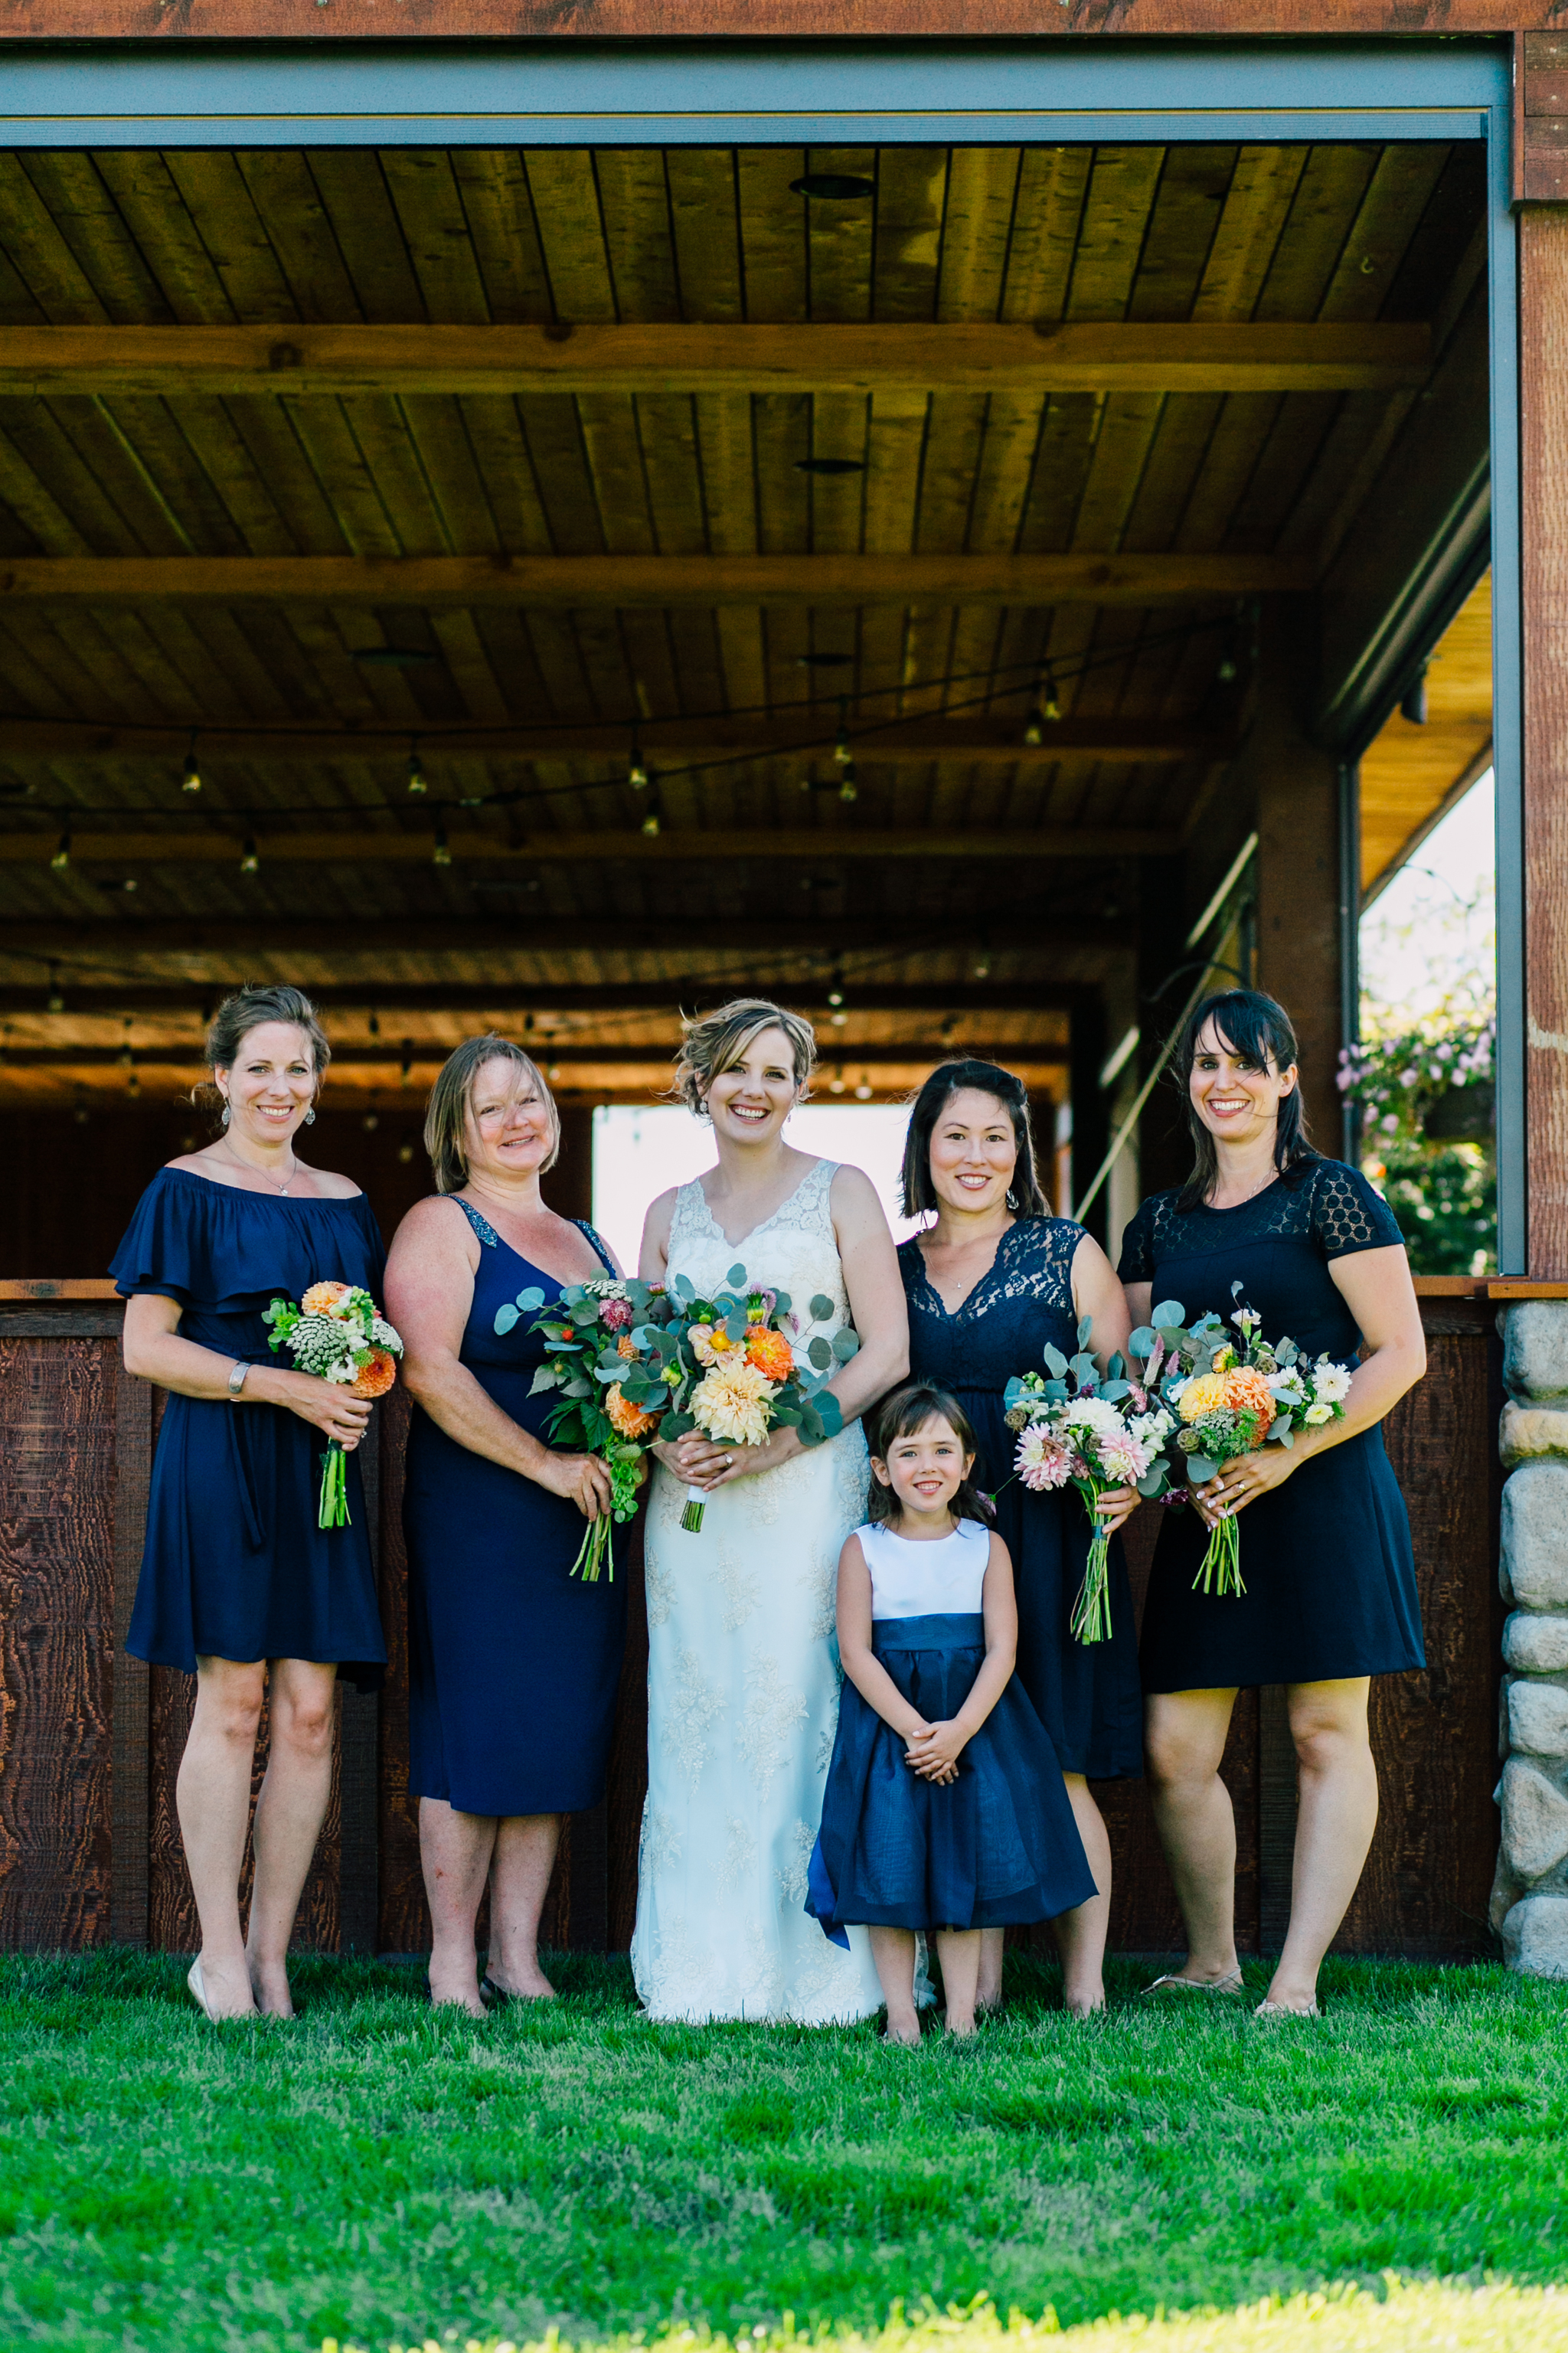 039-bellingham-wedding-photographer-samson-winery-katheryn-moran.jpg